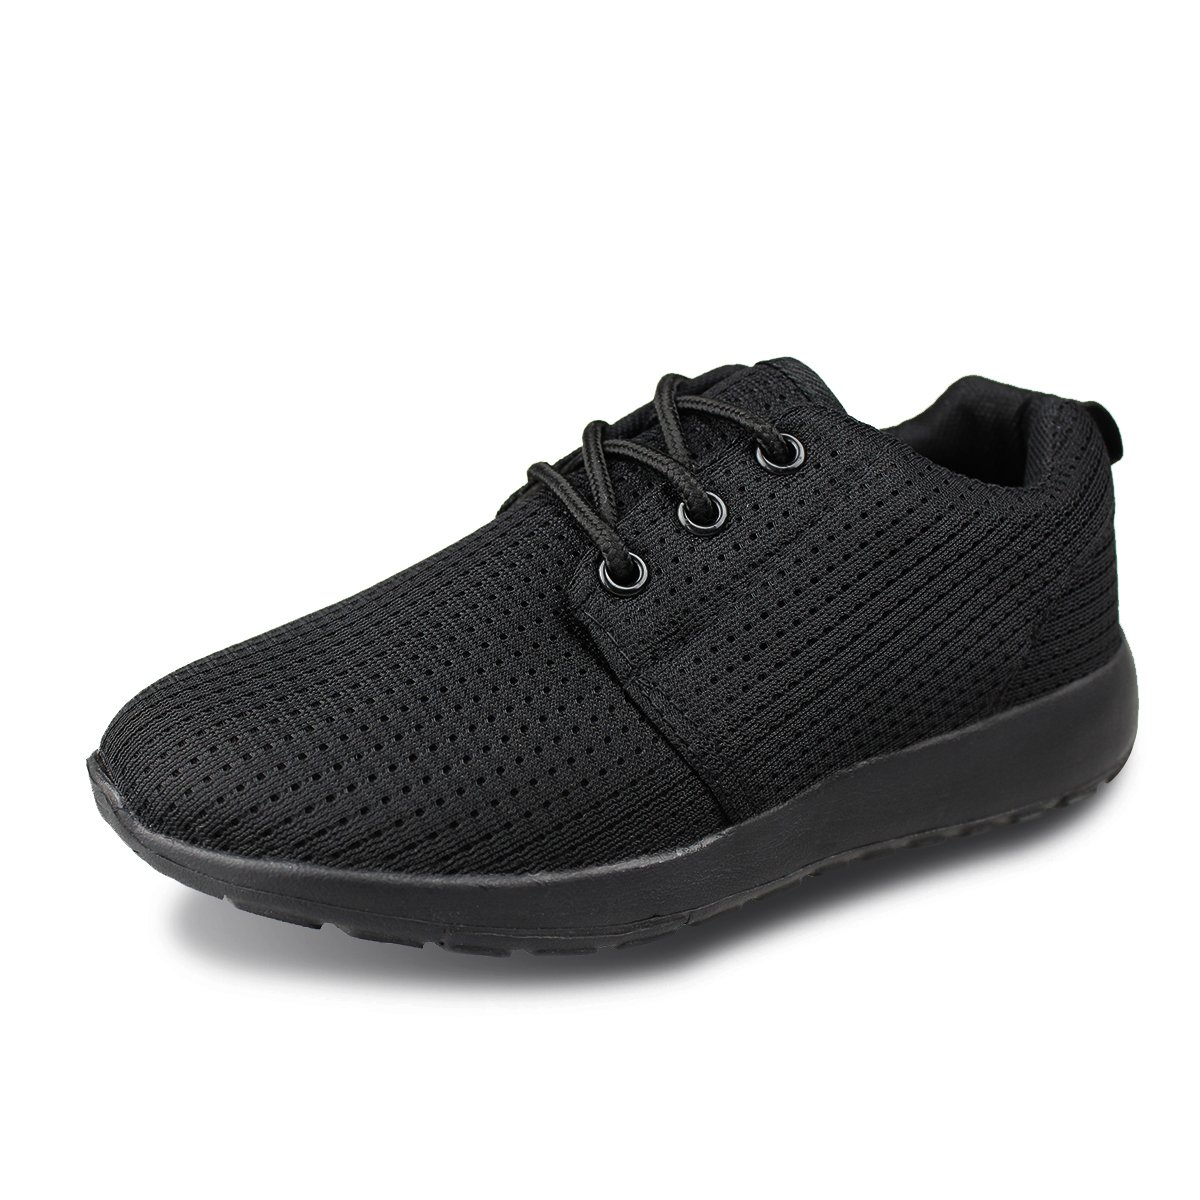 Hawkwell Breathable Lace-up Running Shoes(Toddler/Little Kid/Big Kid),Black Mesh,12 M US Little Kid